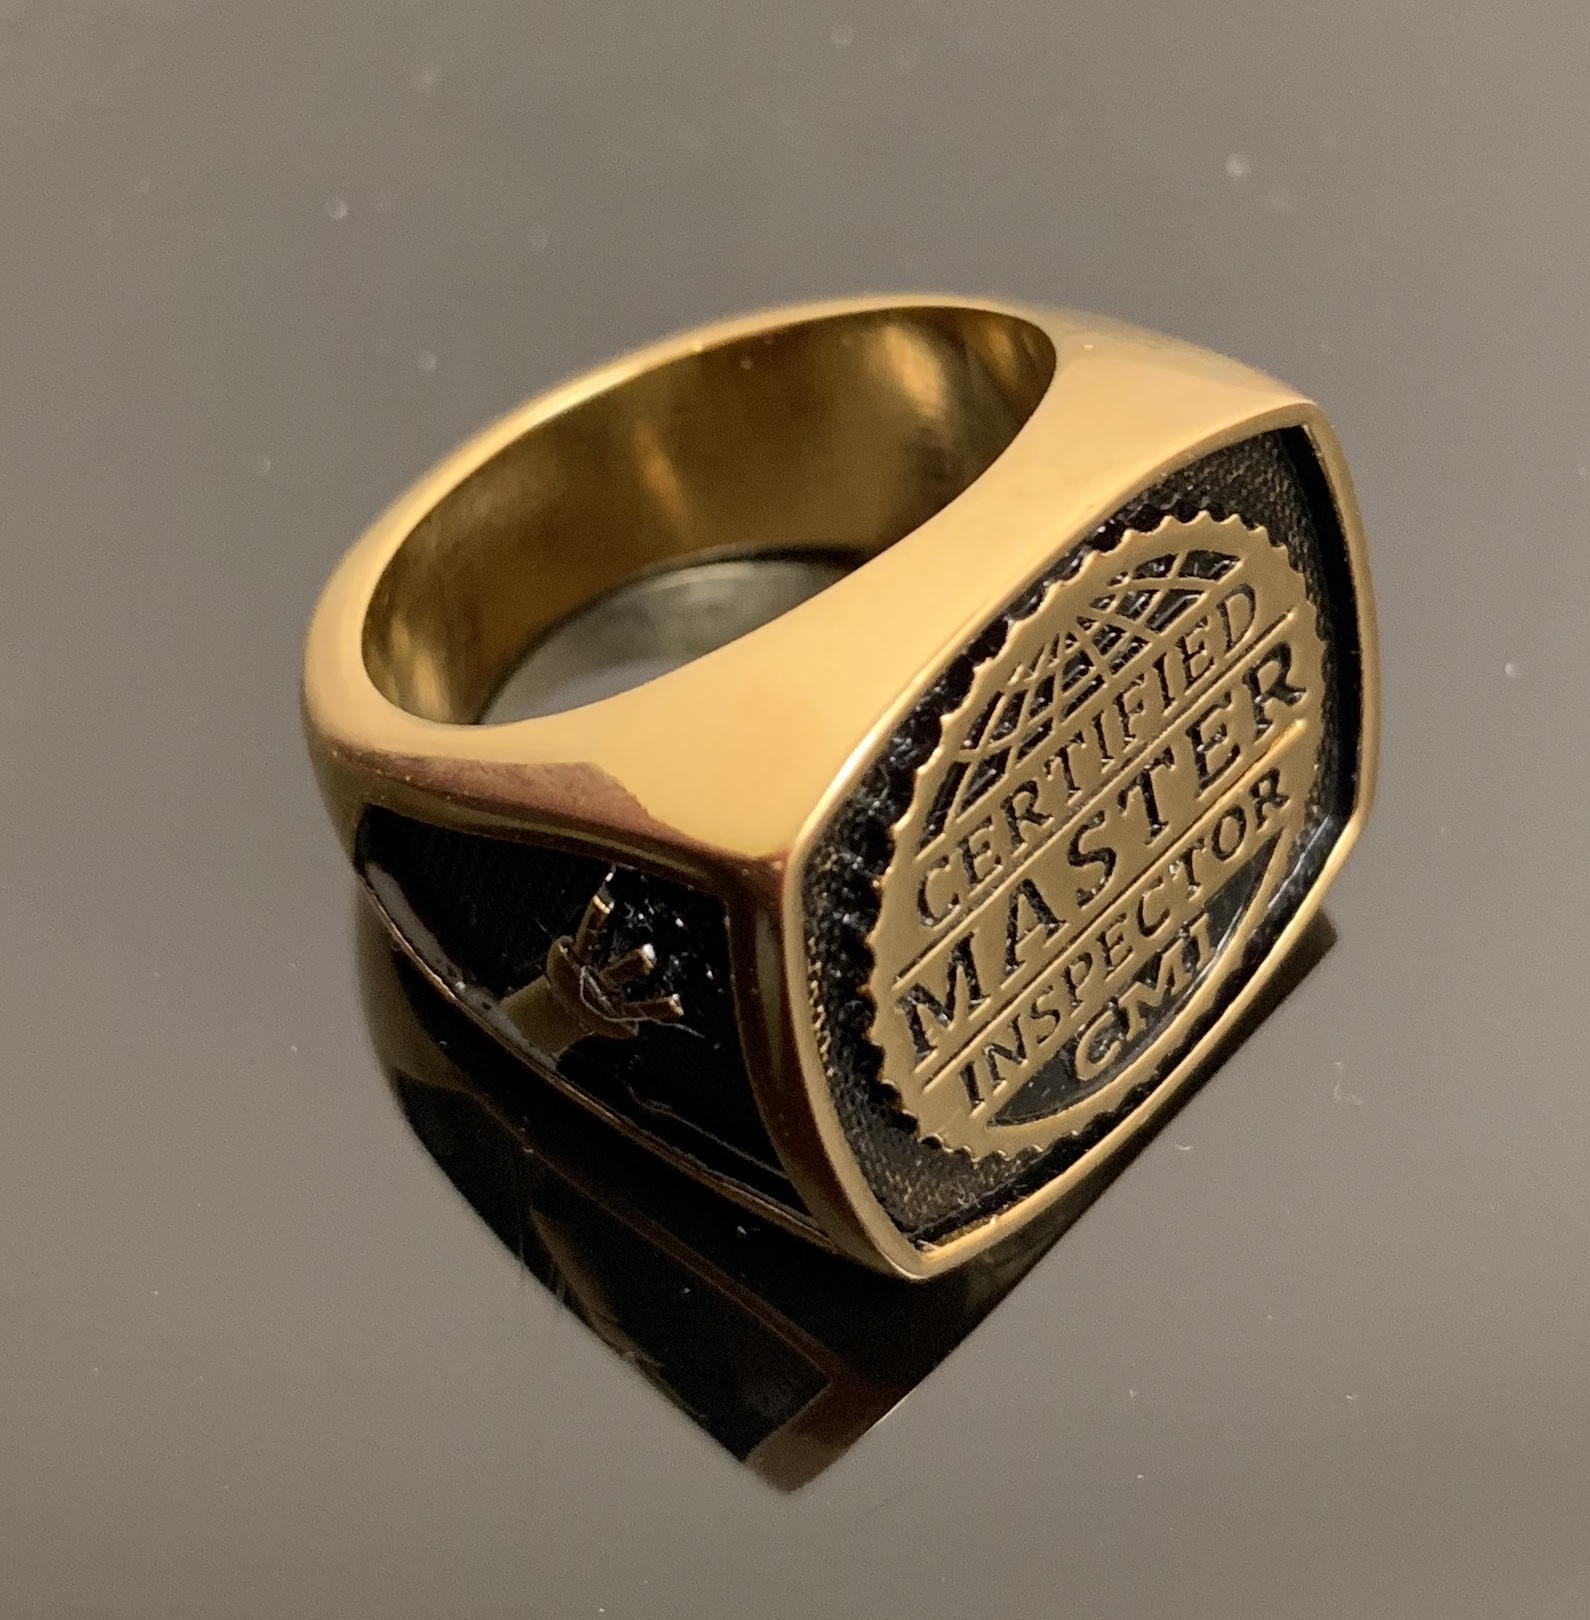 Certified Master Inspector gold ring.